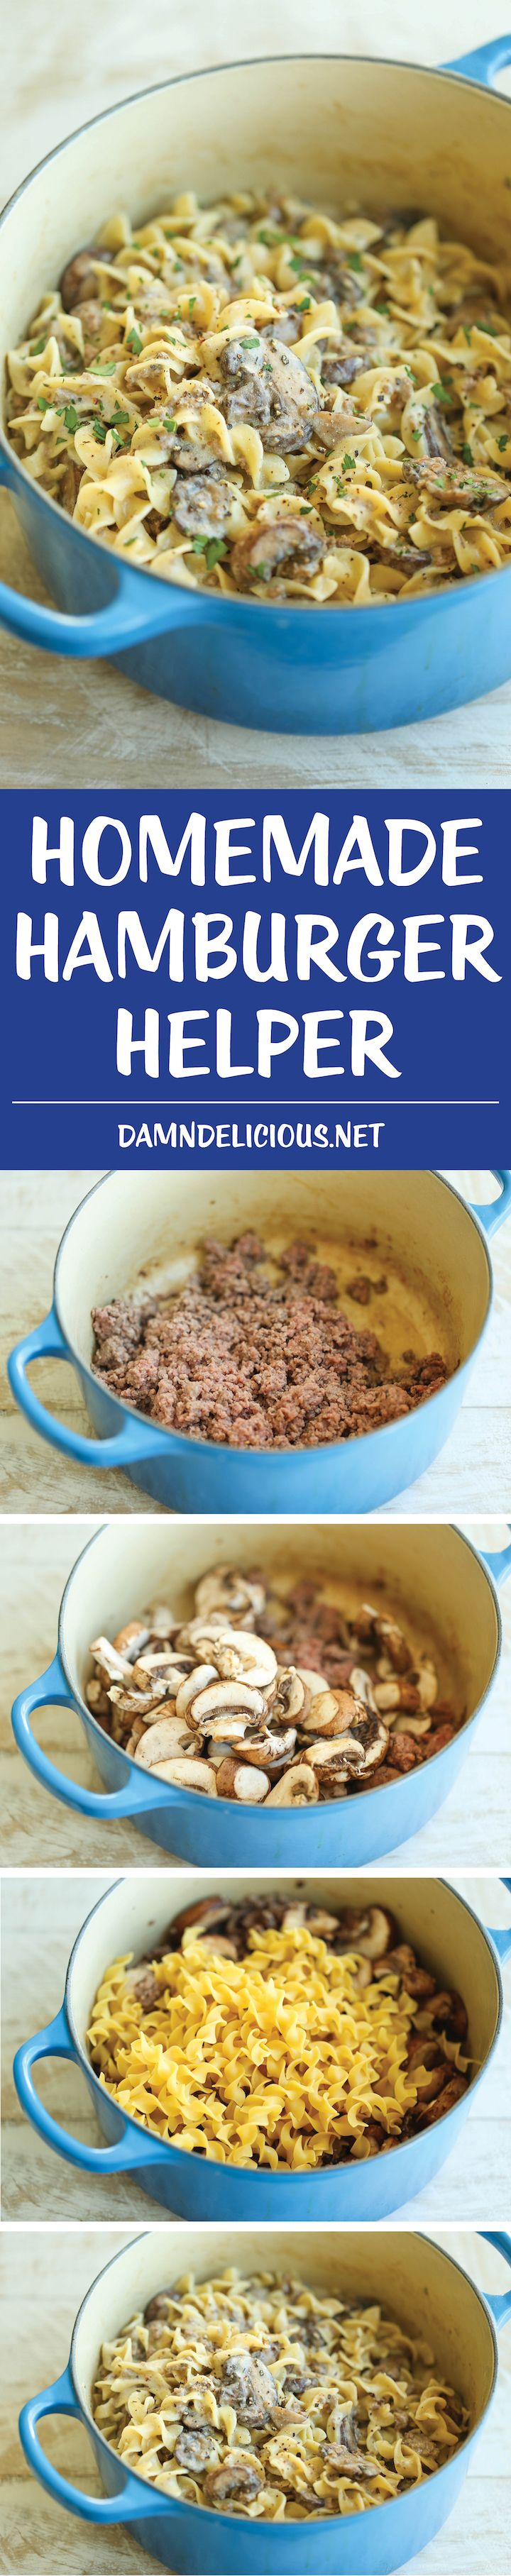 Homemade Hamburger Helper - Beef stroganoff made completely from scratch in ONE POT in less than 30 min. And it tastes 10000x better than the boxed stuff!/Best Hamburger Helper I have had. Fast and tasty. Followed the recipe and I will make again.